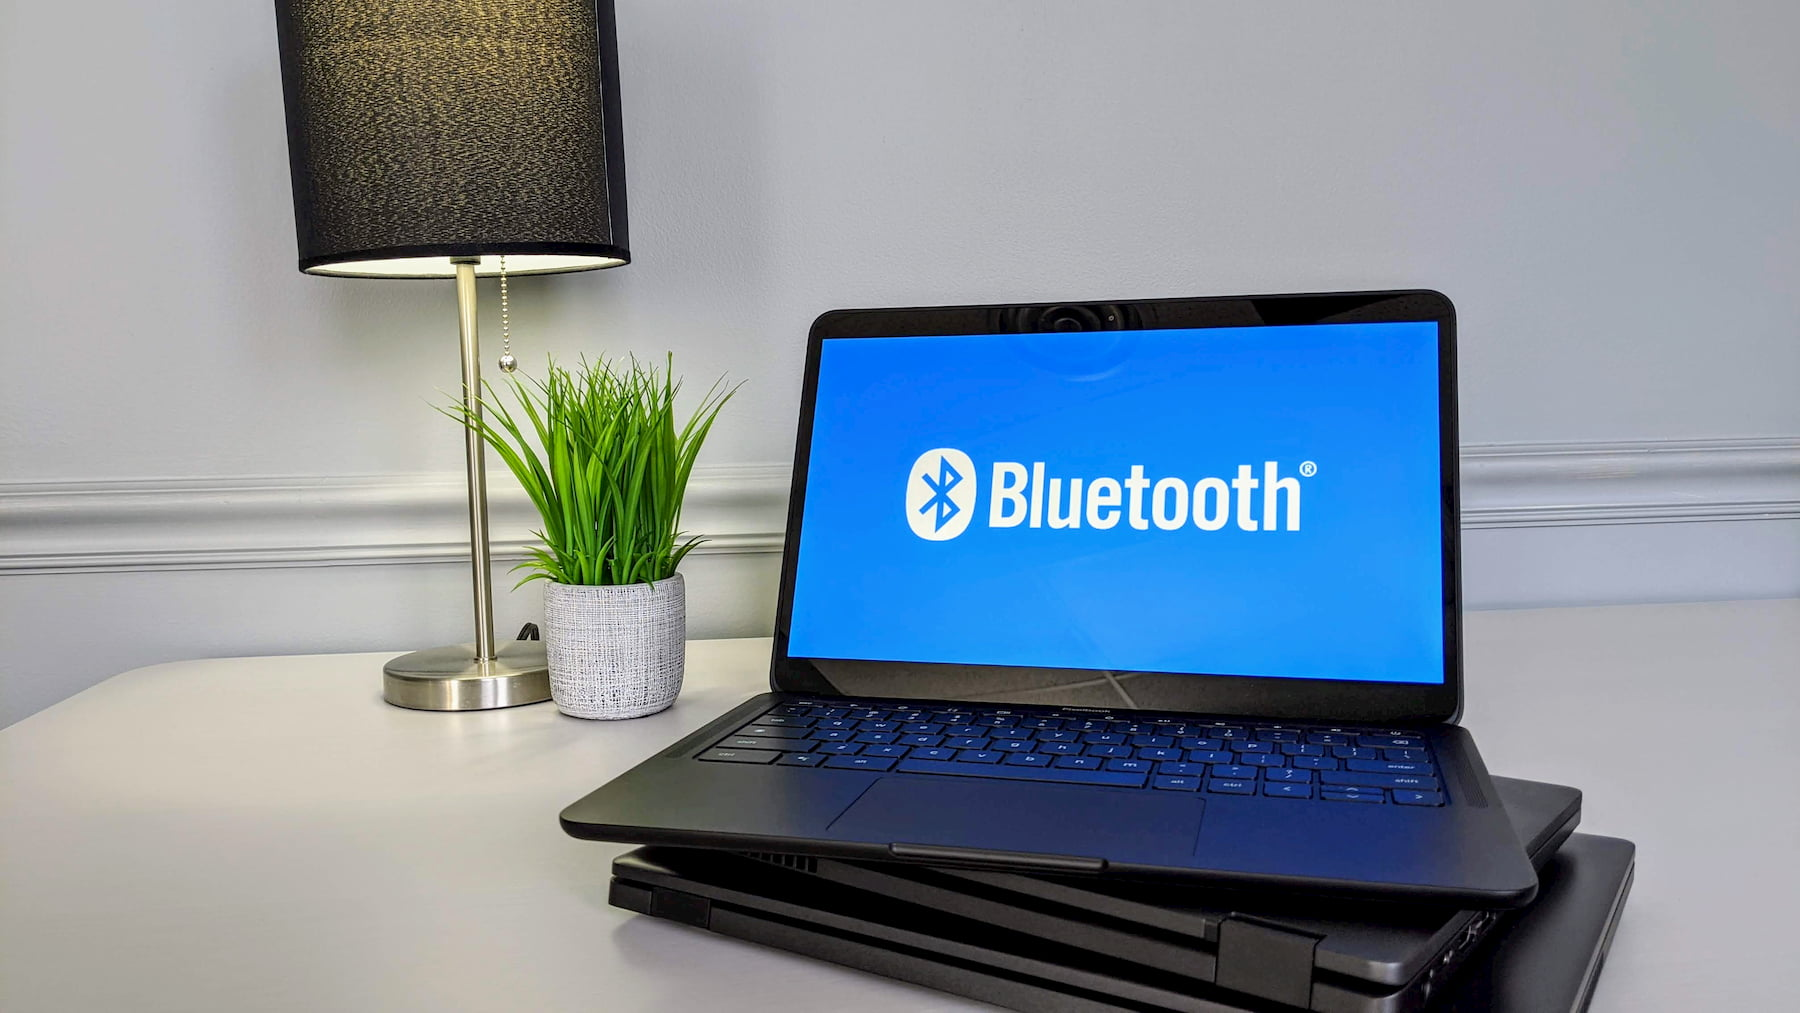 New Chromebooks launching in the next few months will finally bring Bluetooth 5.0 to Chrome OS